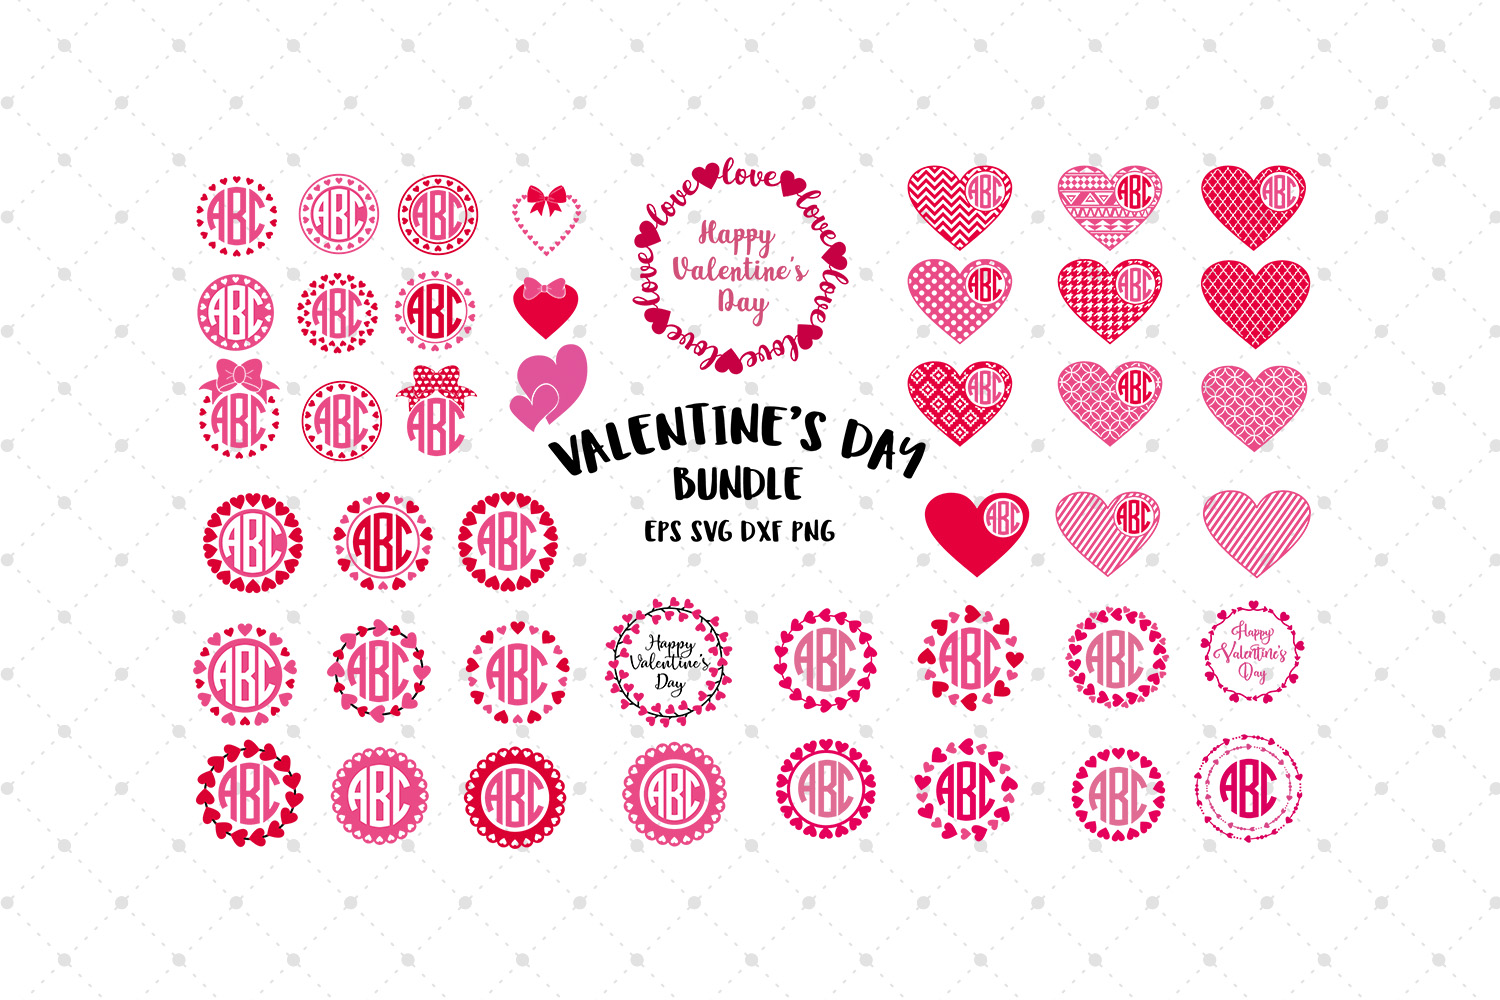 Valentines Day SVG Bundle  example image 2